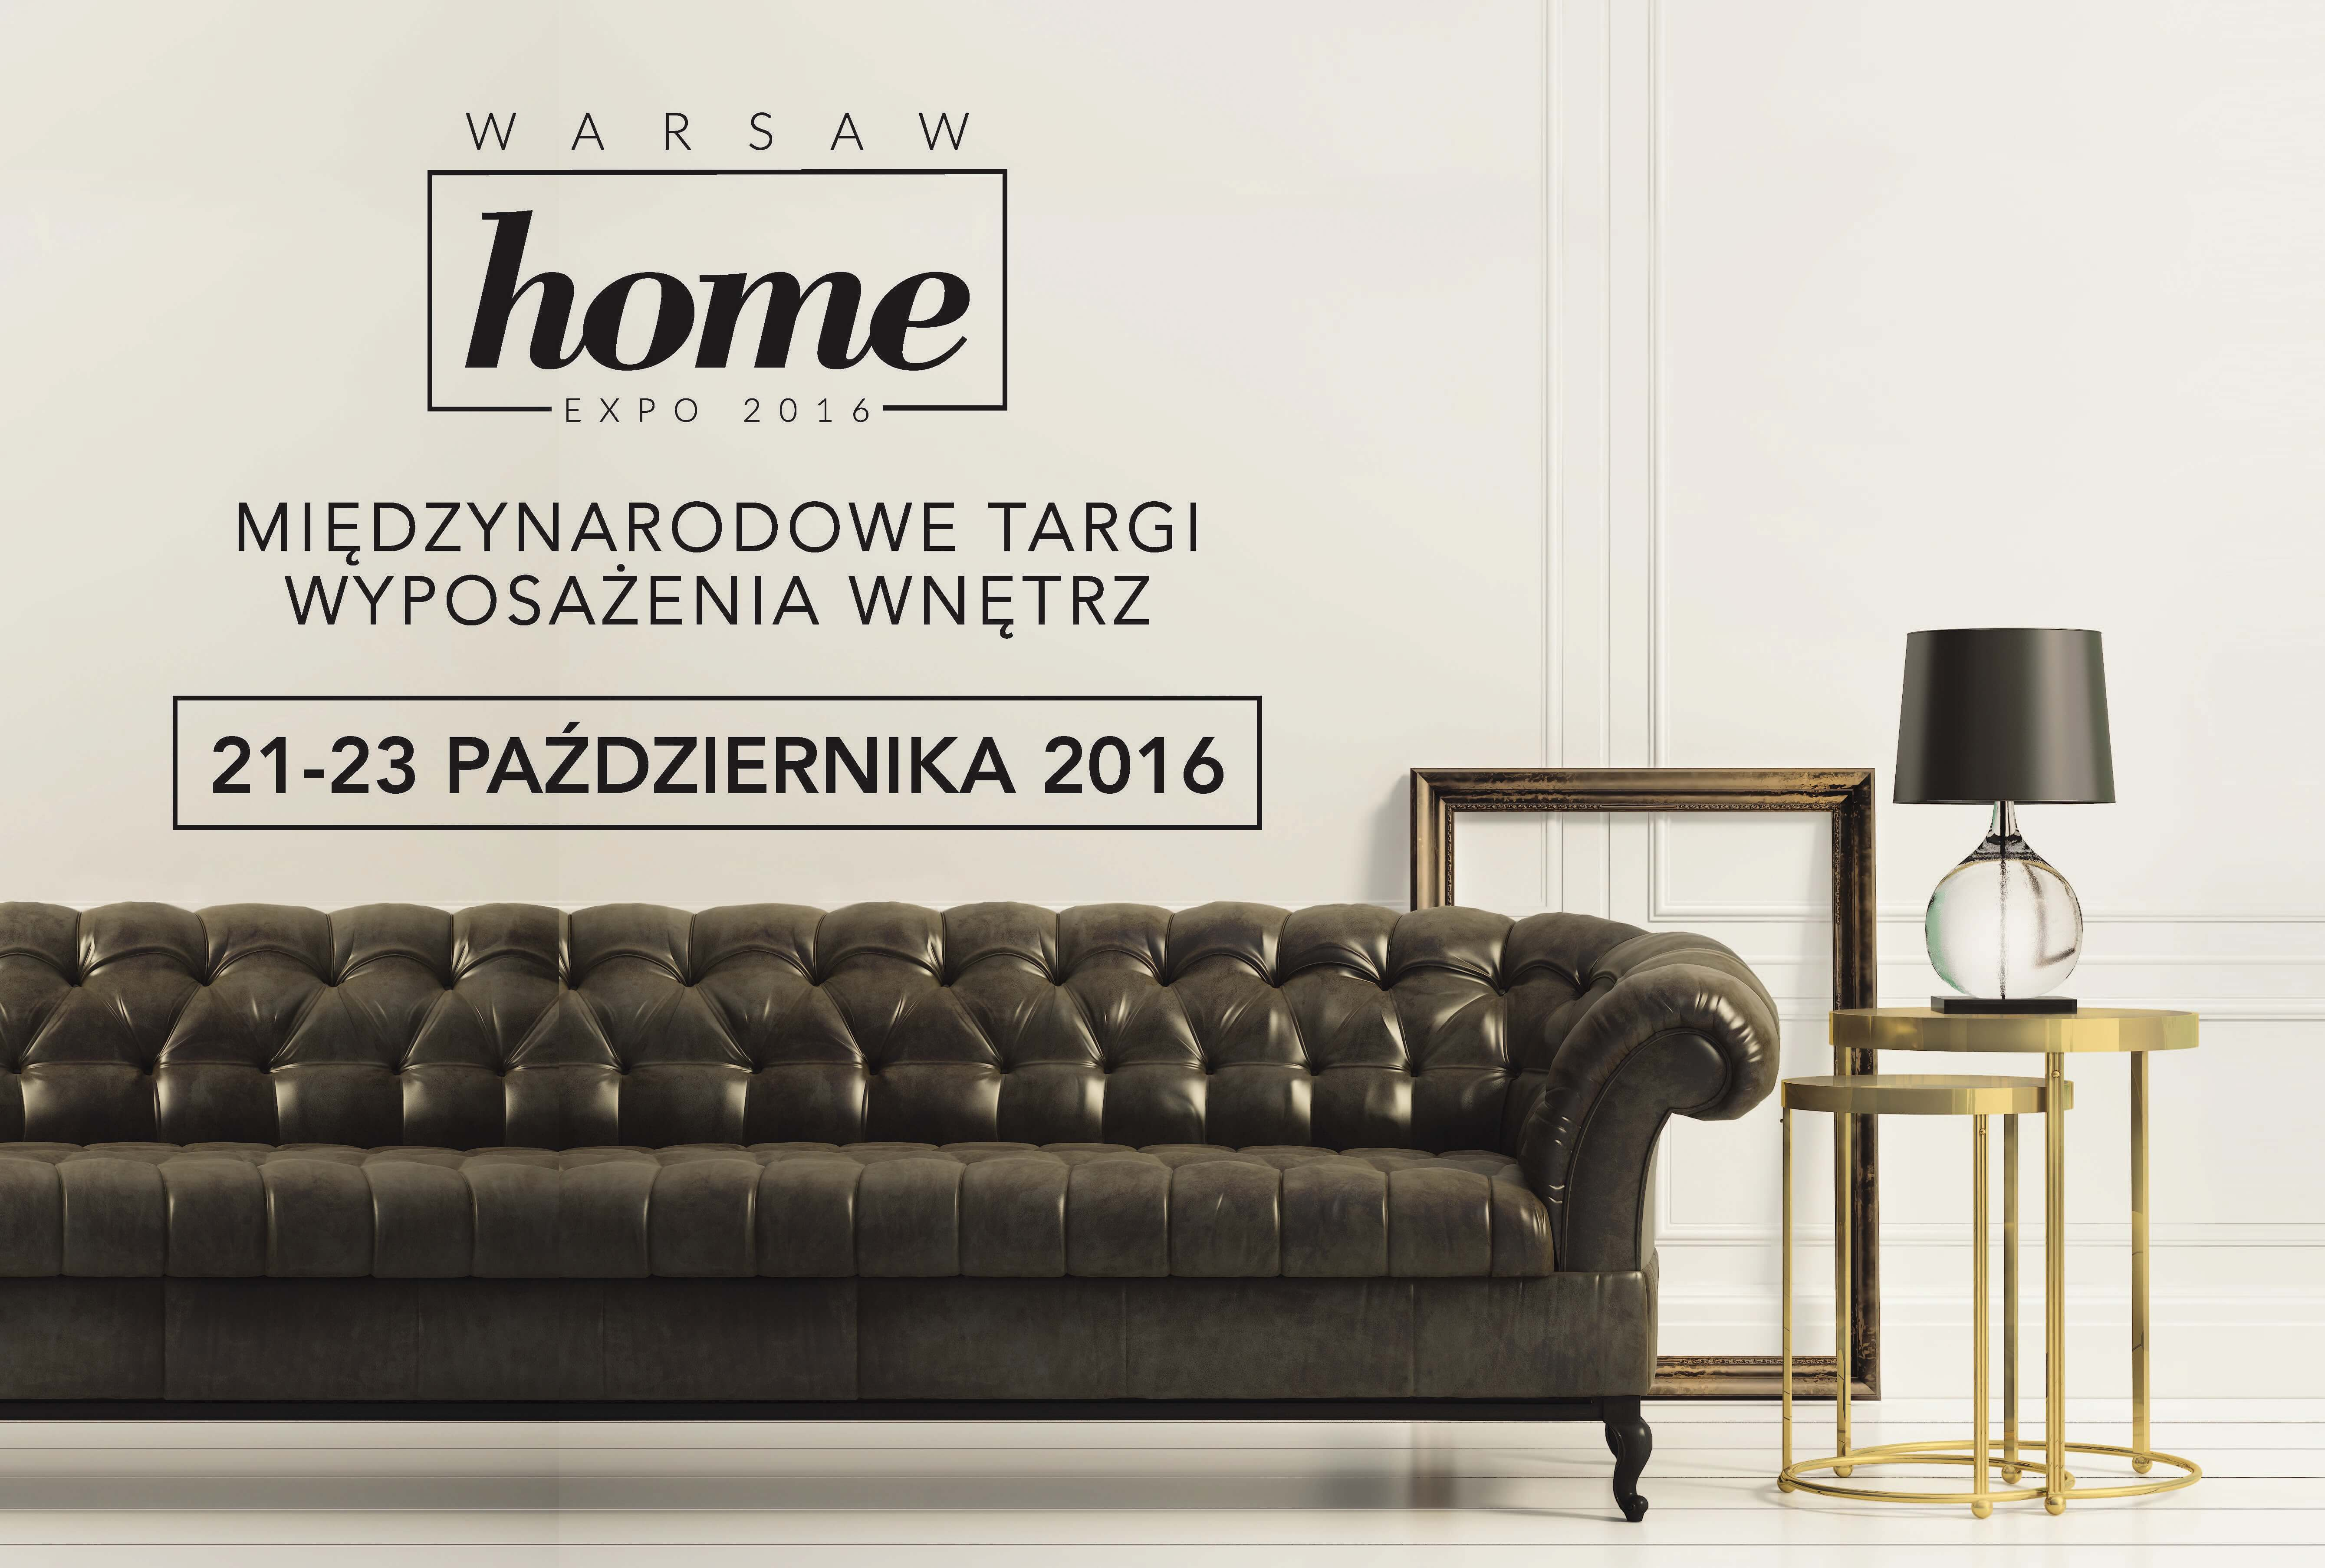 warsaw_home